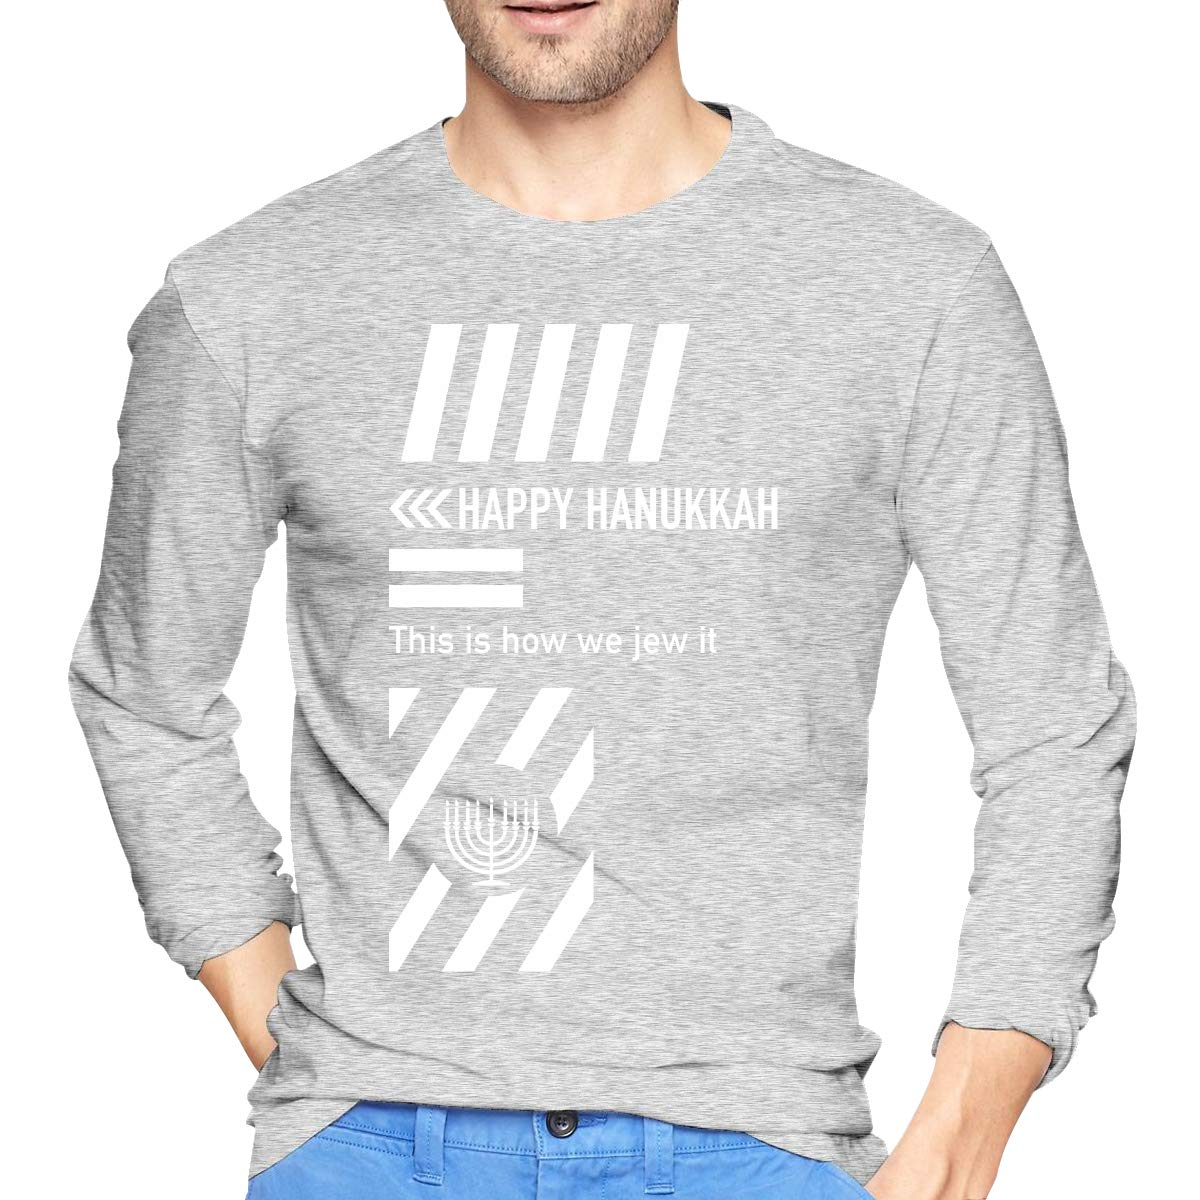 This is How We Jew It Happy Hanukkah Jewish Boys Ultra Cotton Fit Long Sleeve Tee Casual Tops Tee